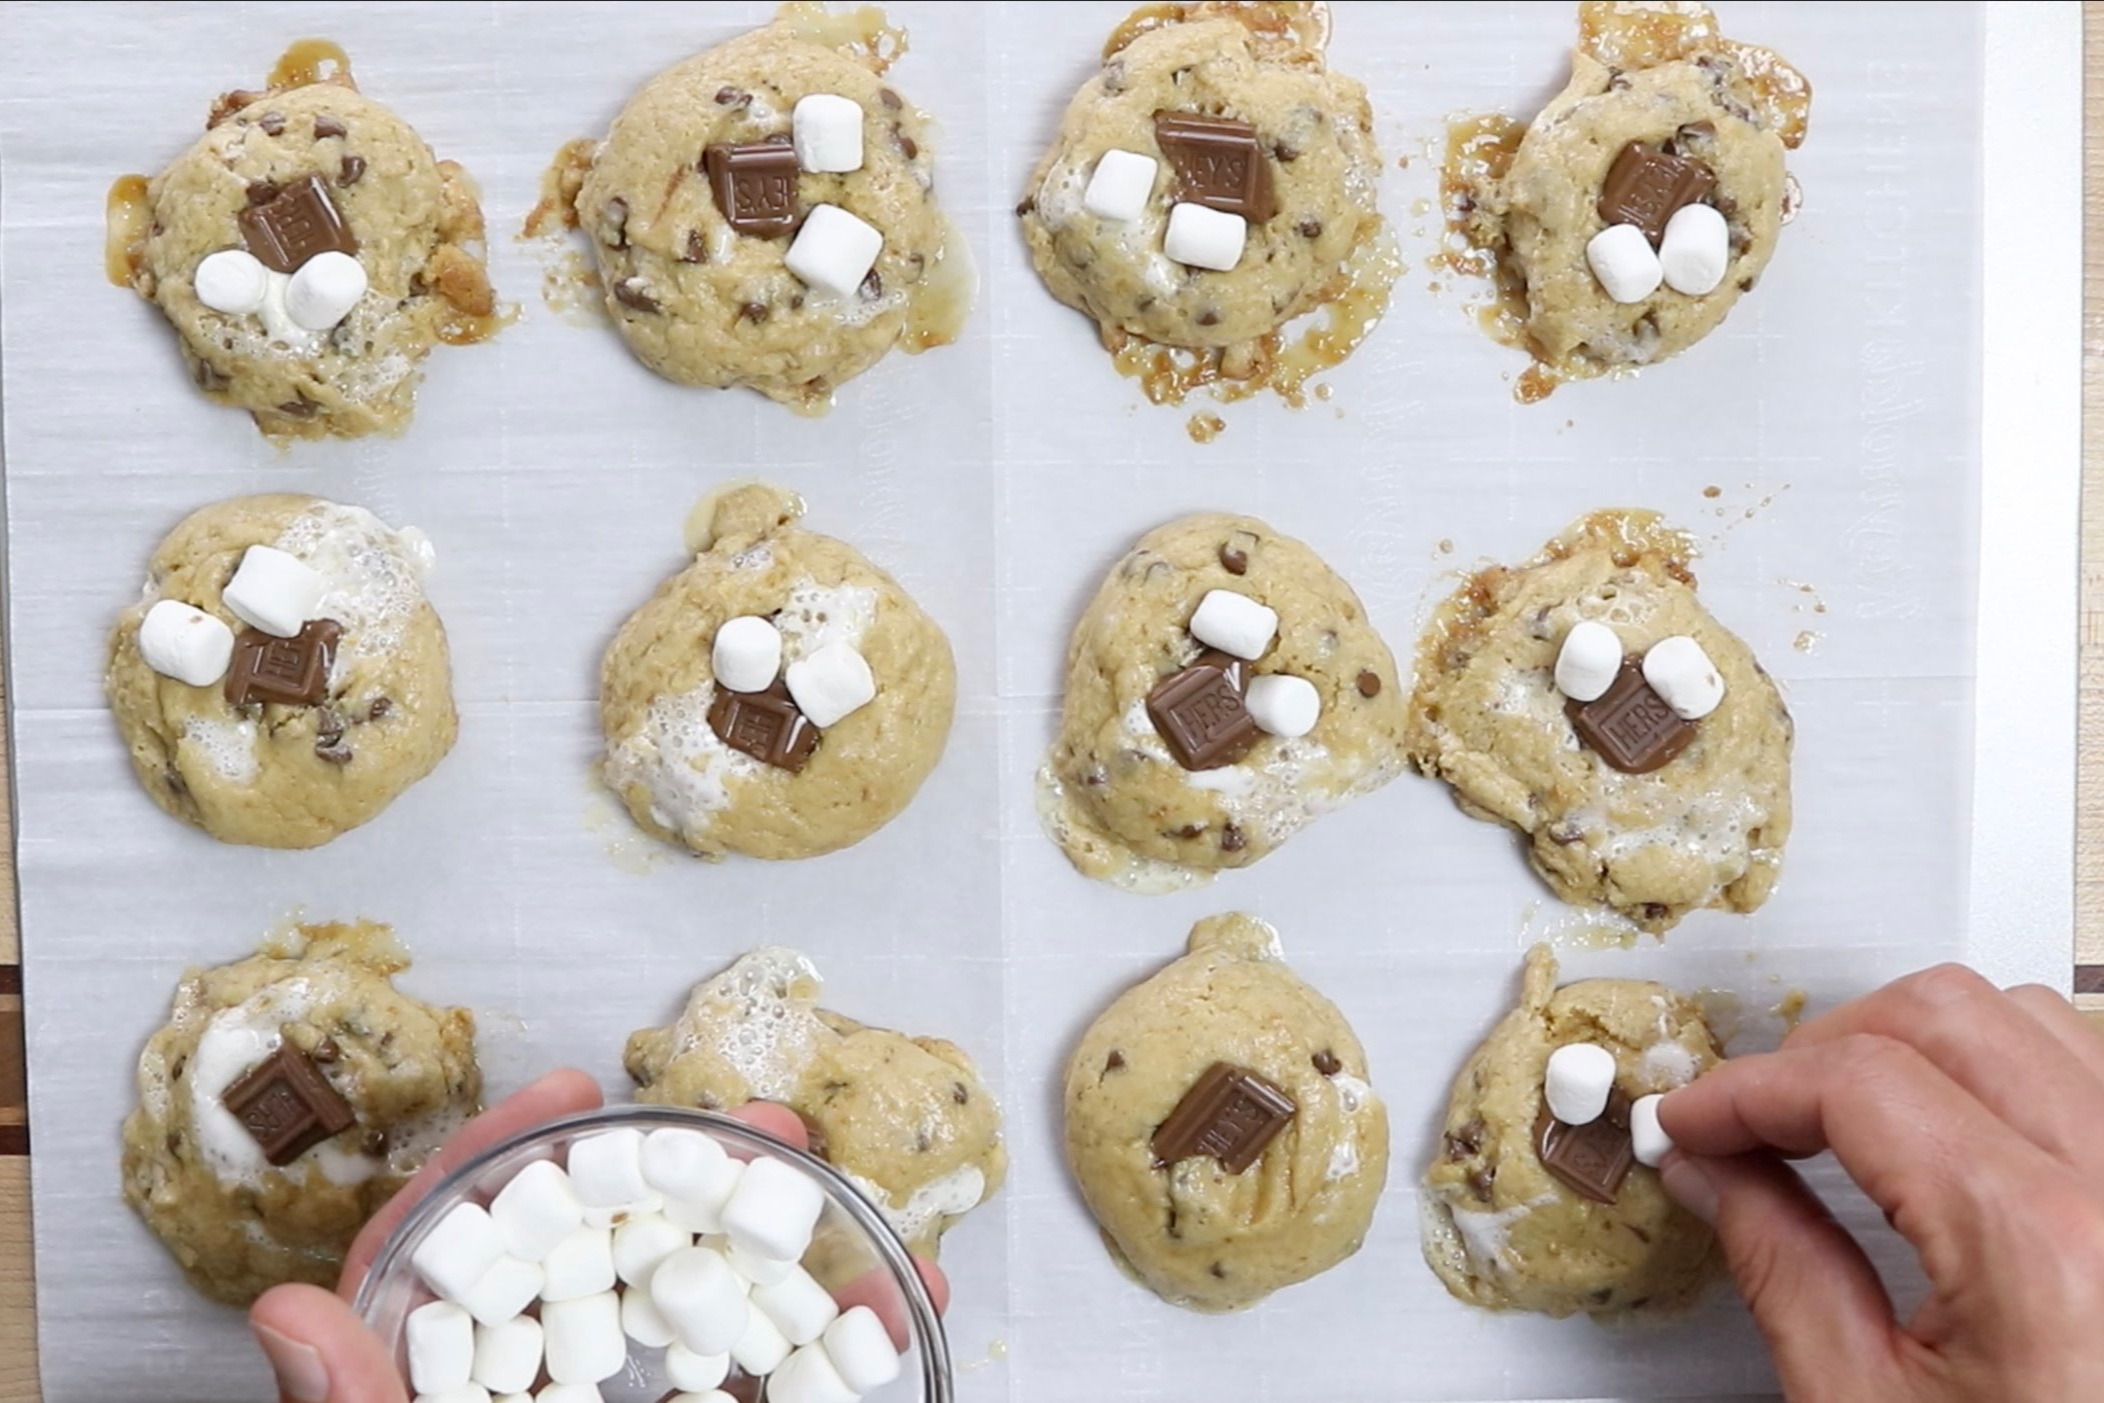 11. Add extra marshmallows and milk chocolate pieces to cookies if desired. -